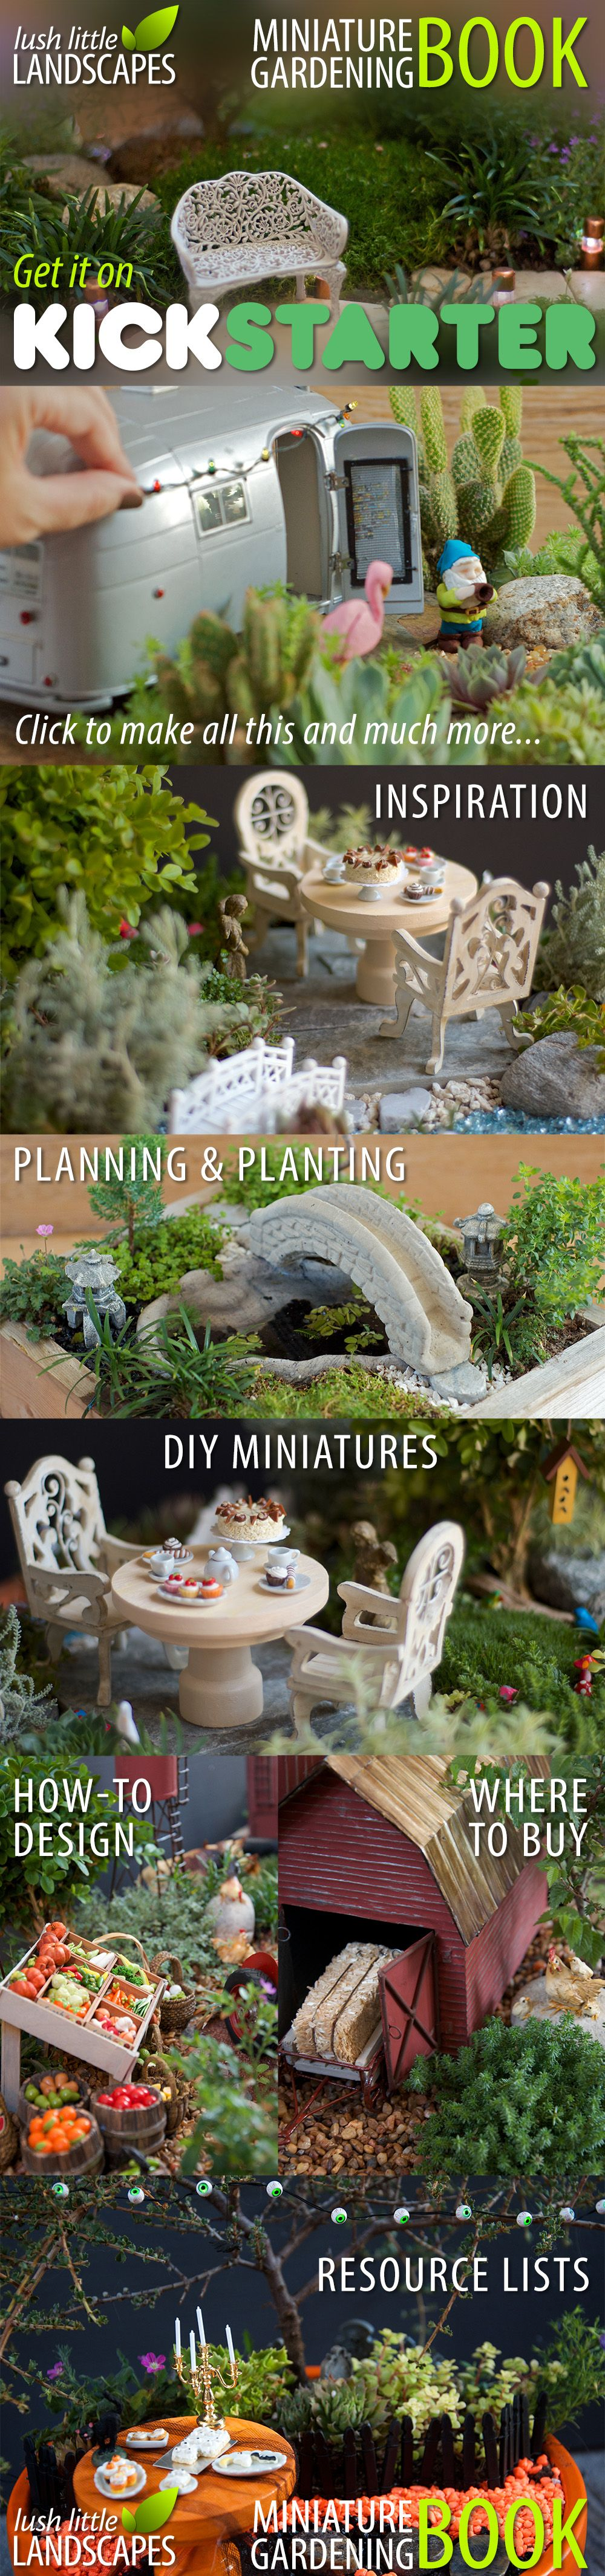 on kickstarter the lush little landscapes book shows you how to